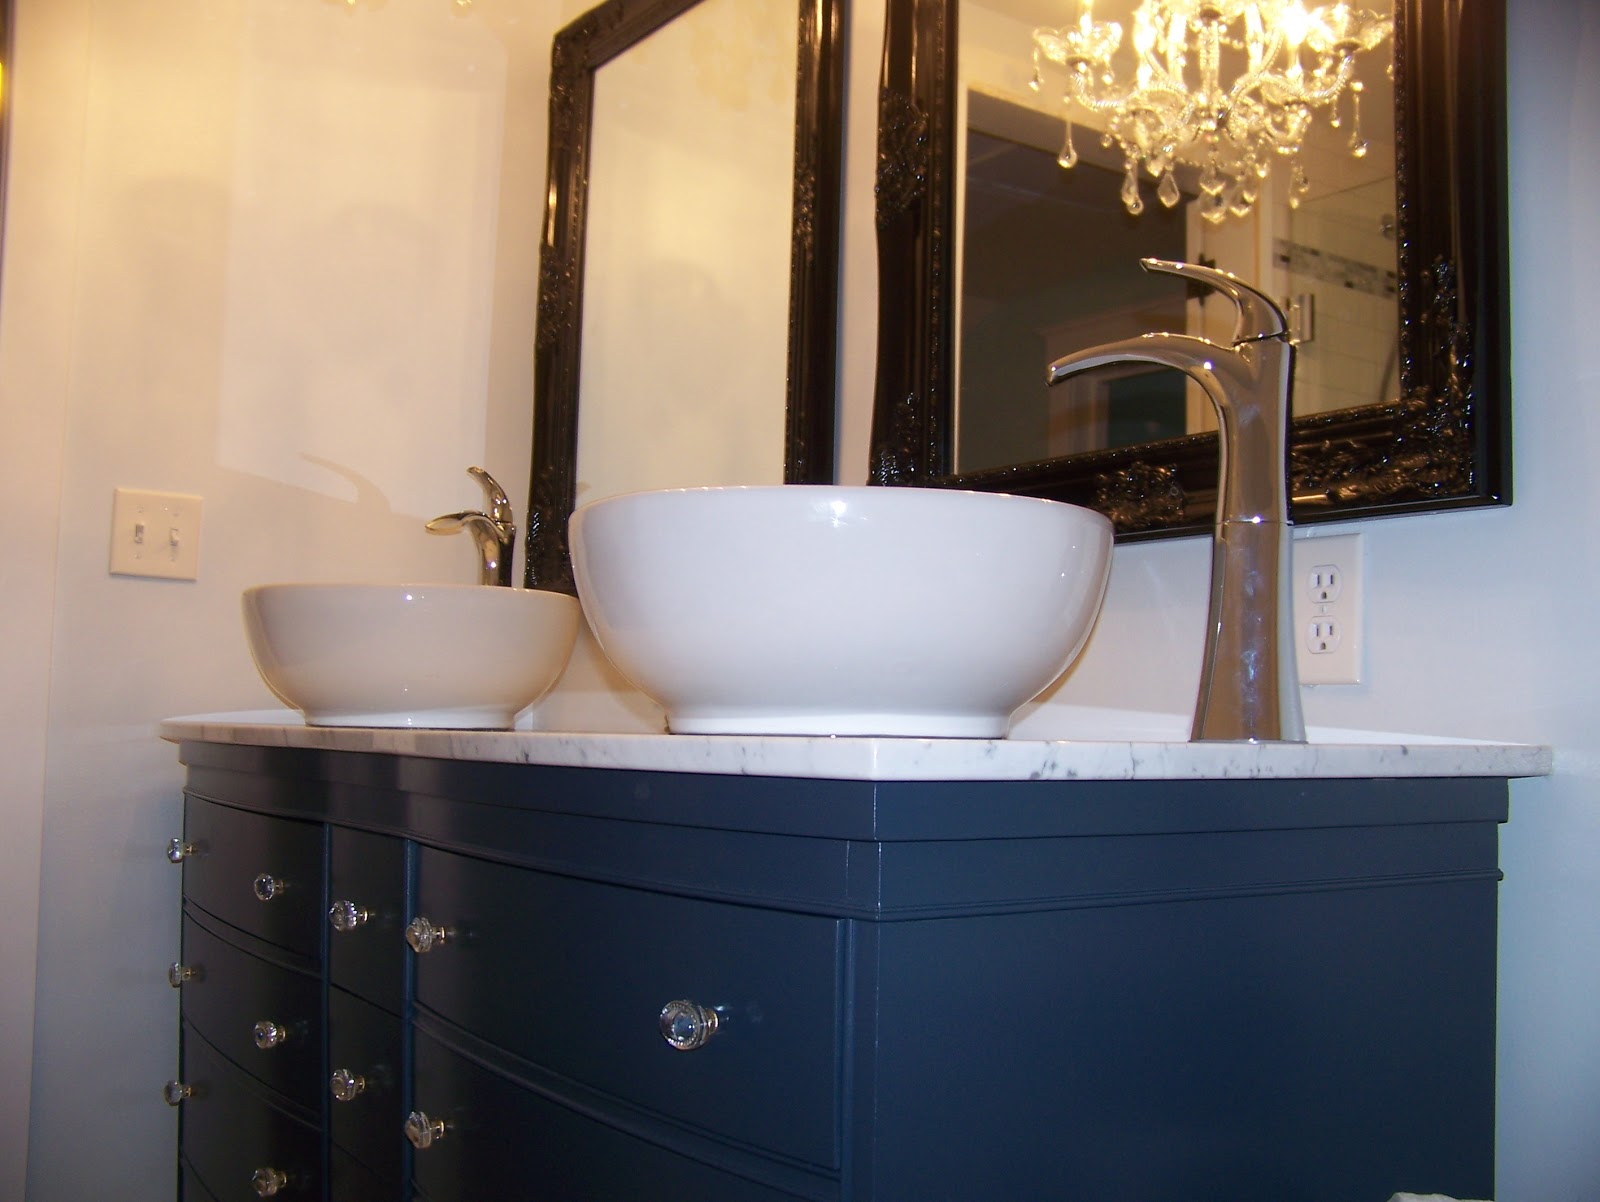 TURNING A DRESSER INTO A BATHROOM VANITY. JULIE PETERSON   Simple Redesign  TURNING A DRESSER INTO A